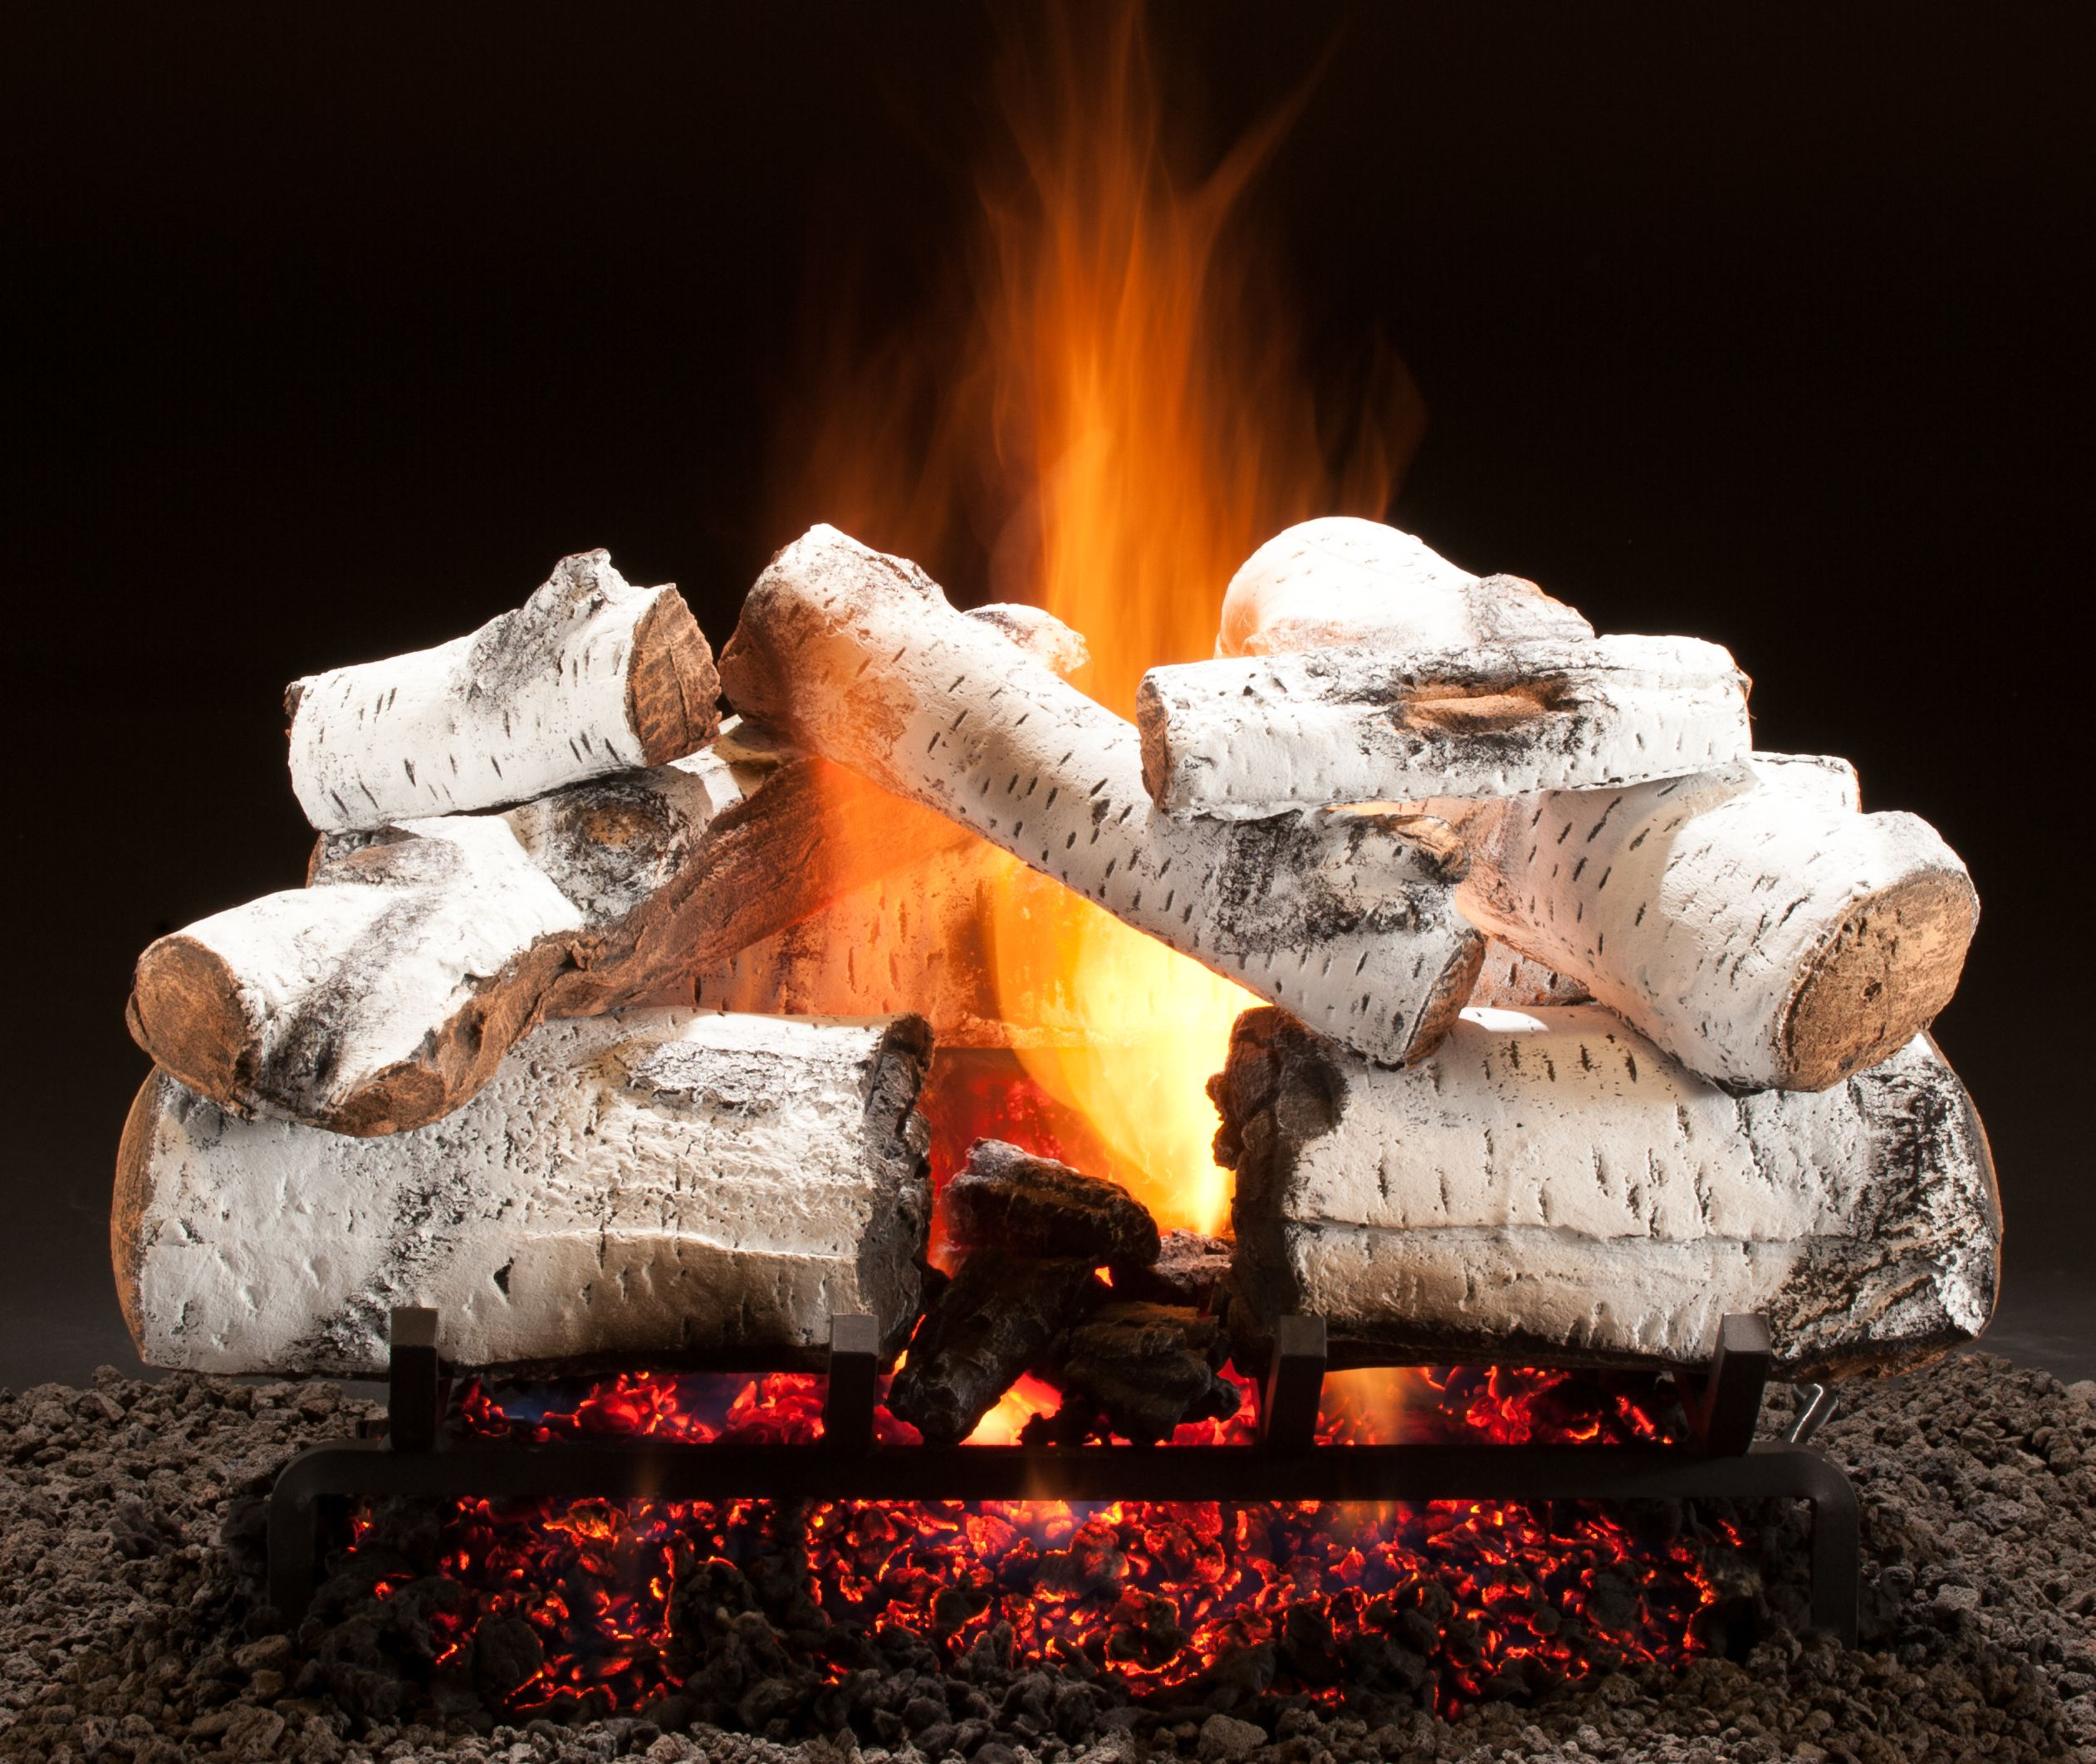 birch real home logs log width inspirational awesome fireplace gas fyre inch peterson outdoor white set imgsizet bordercolor height modern with of